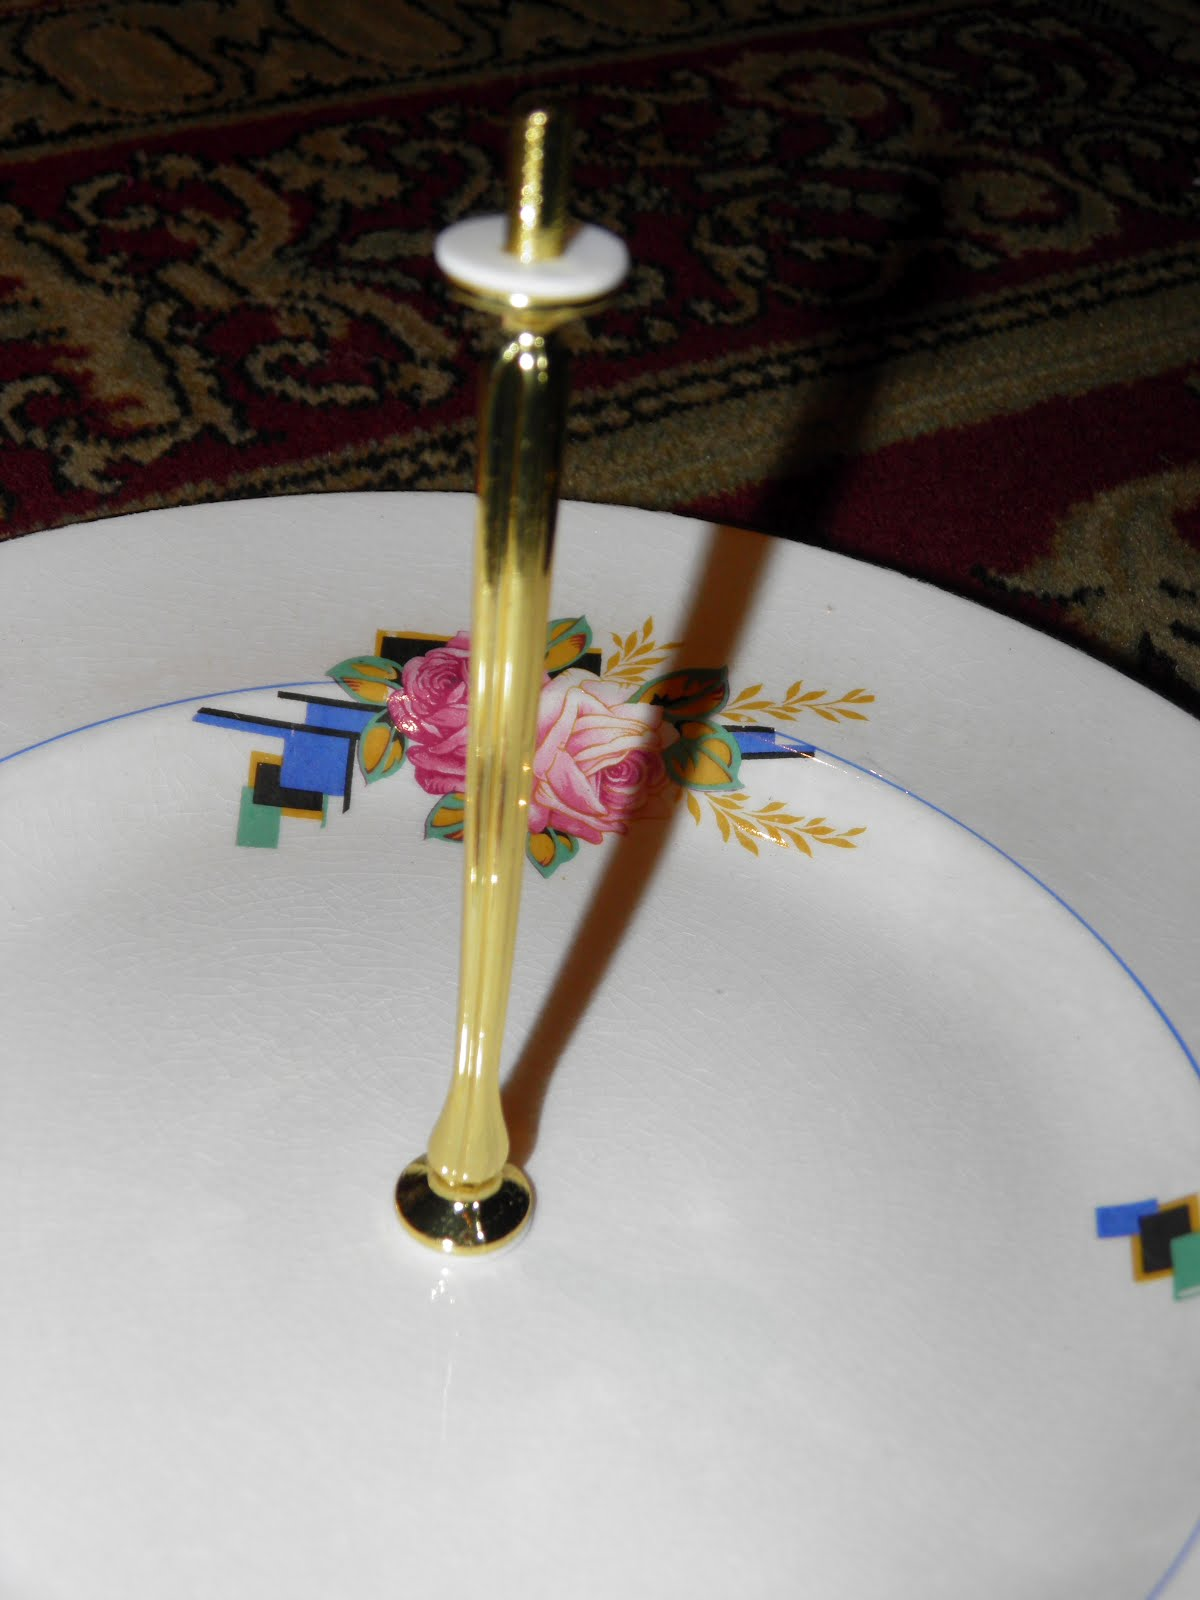 Kit To Make Tiered Cake Stand